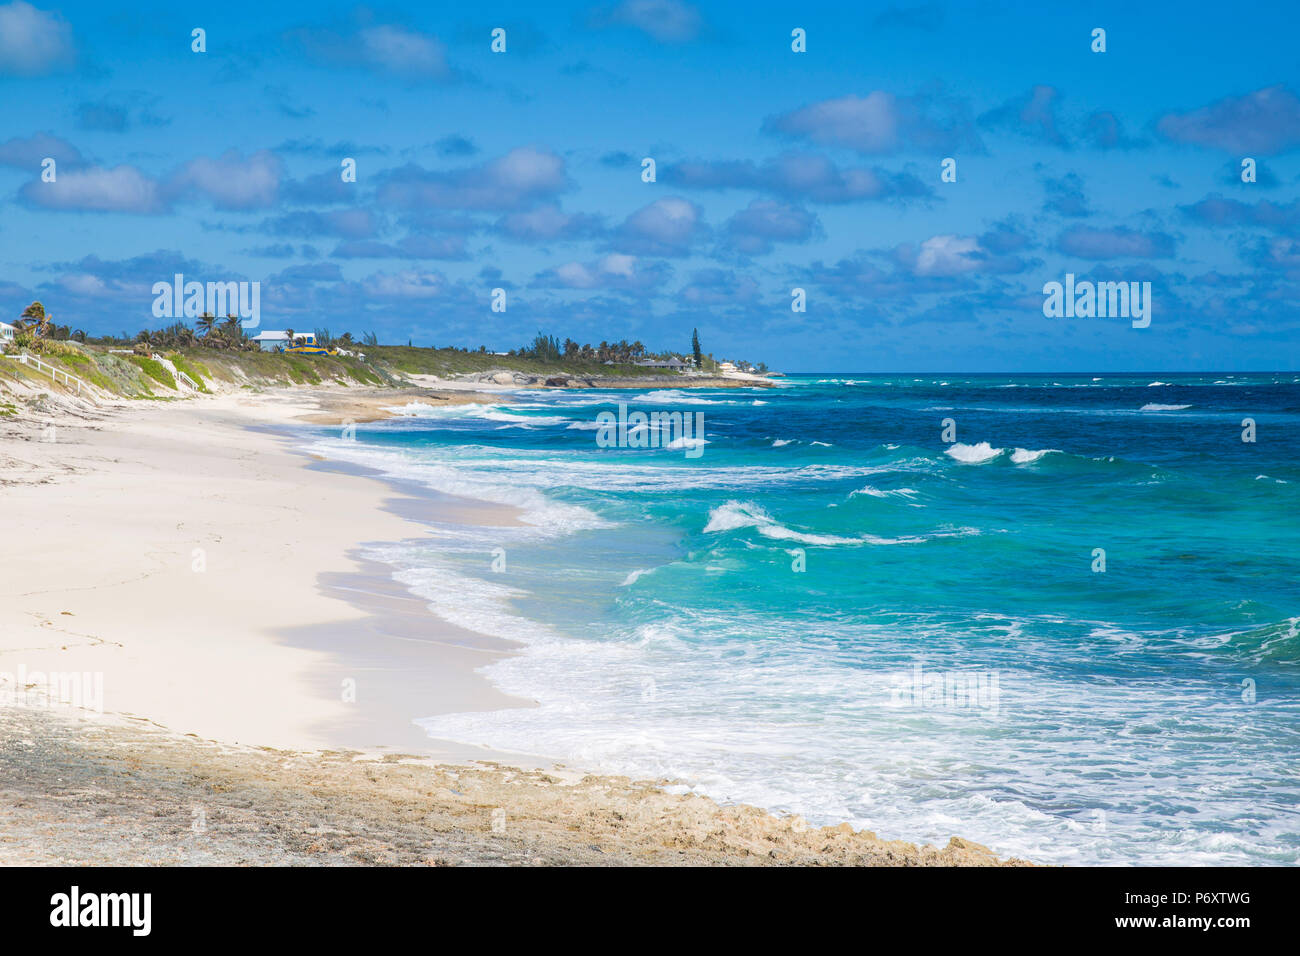 Bahamas, Abaco Islands, Elbow Cay, White Sound beach - Stock Image